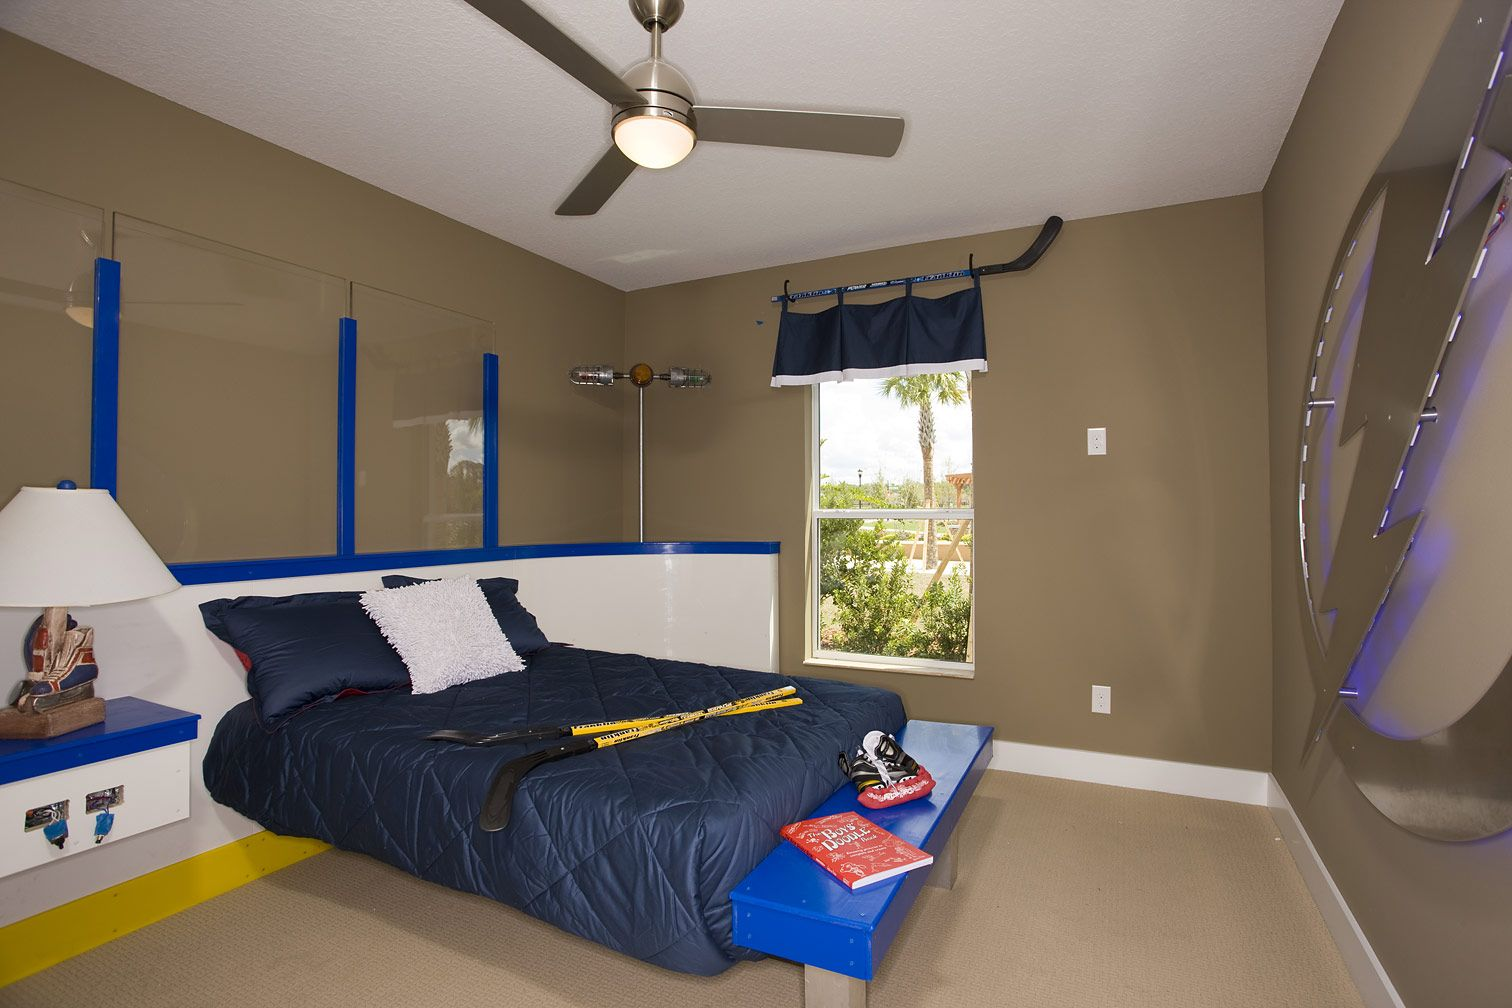 Boys hockey bedroom ideas - Pin By Bonnie Greenleaf On Hockey Pinterest